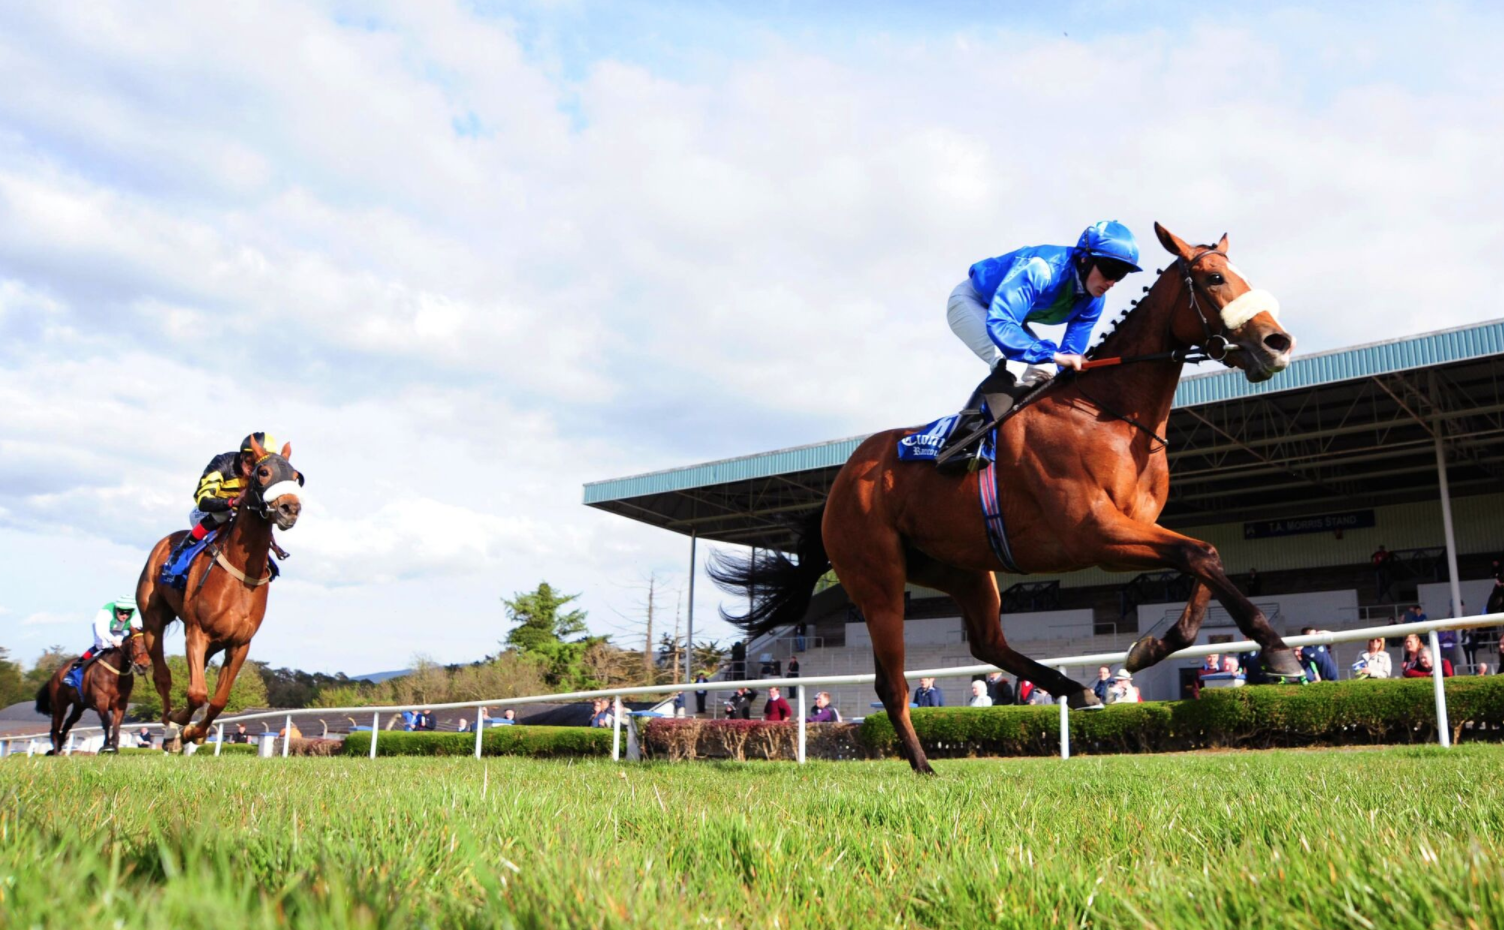 Irish National Stud: An Exciting Year Ahead For The Breeding & Racing Club